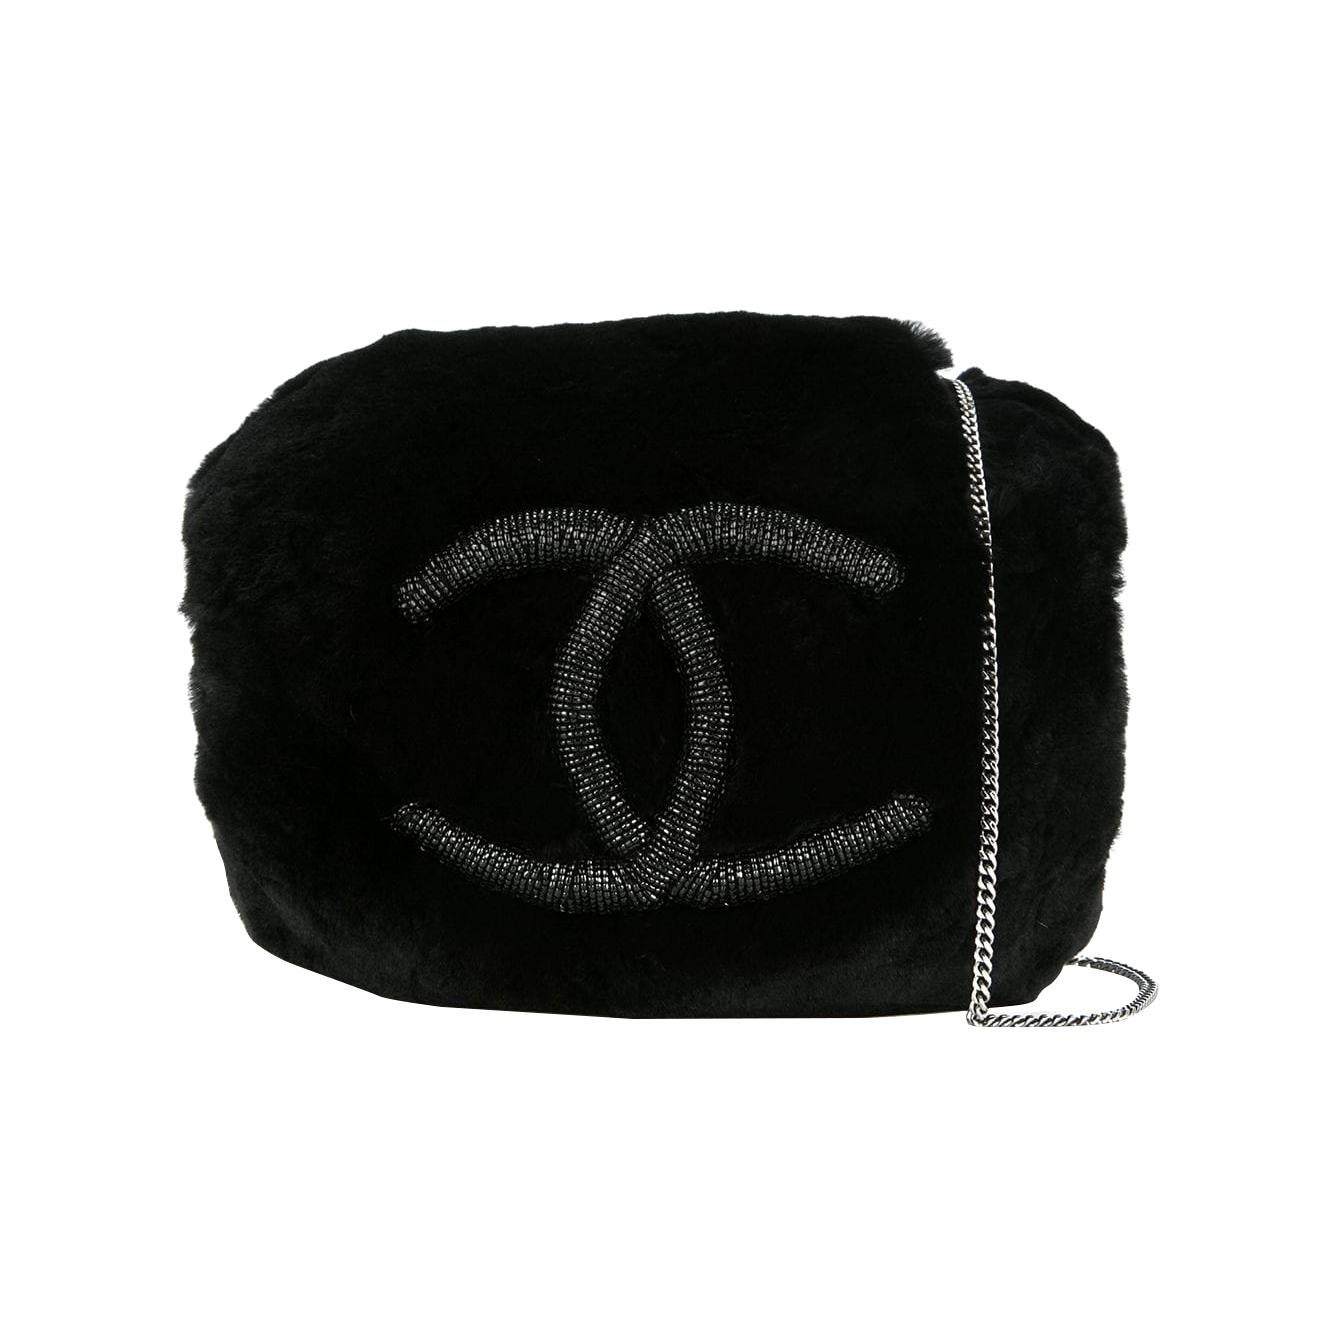 Chanel Runway Black Bead Fur Silver Logo  Evening Muffler Clutch Shoulder Bag